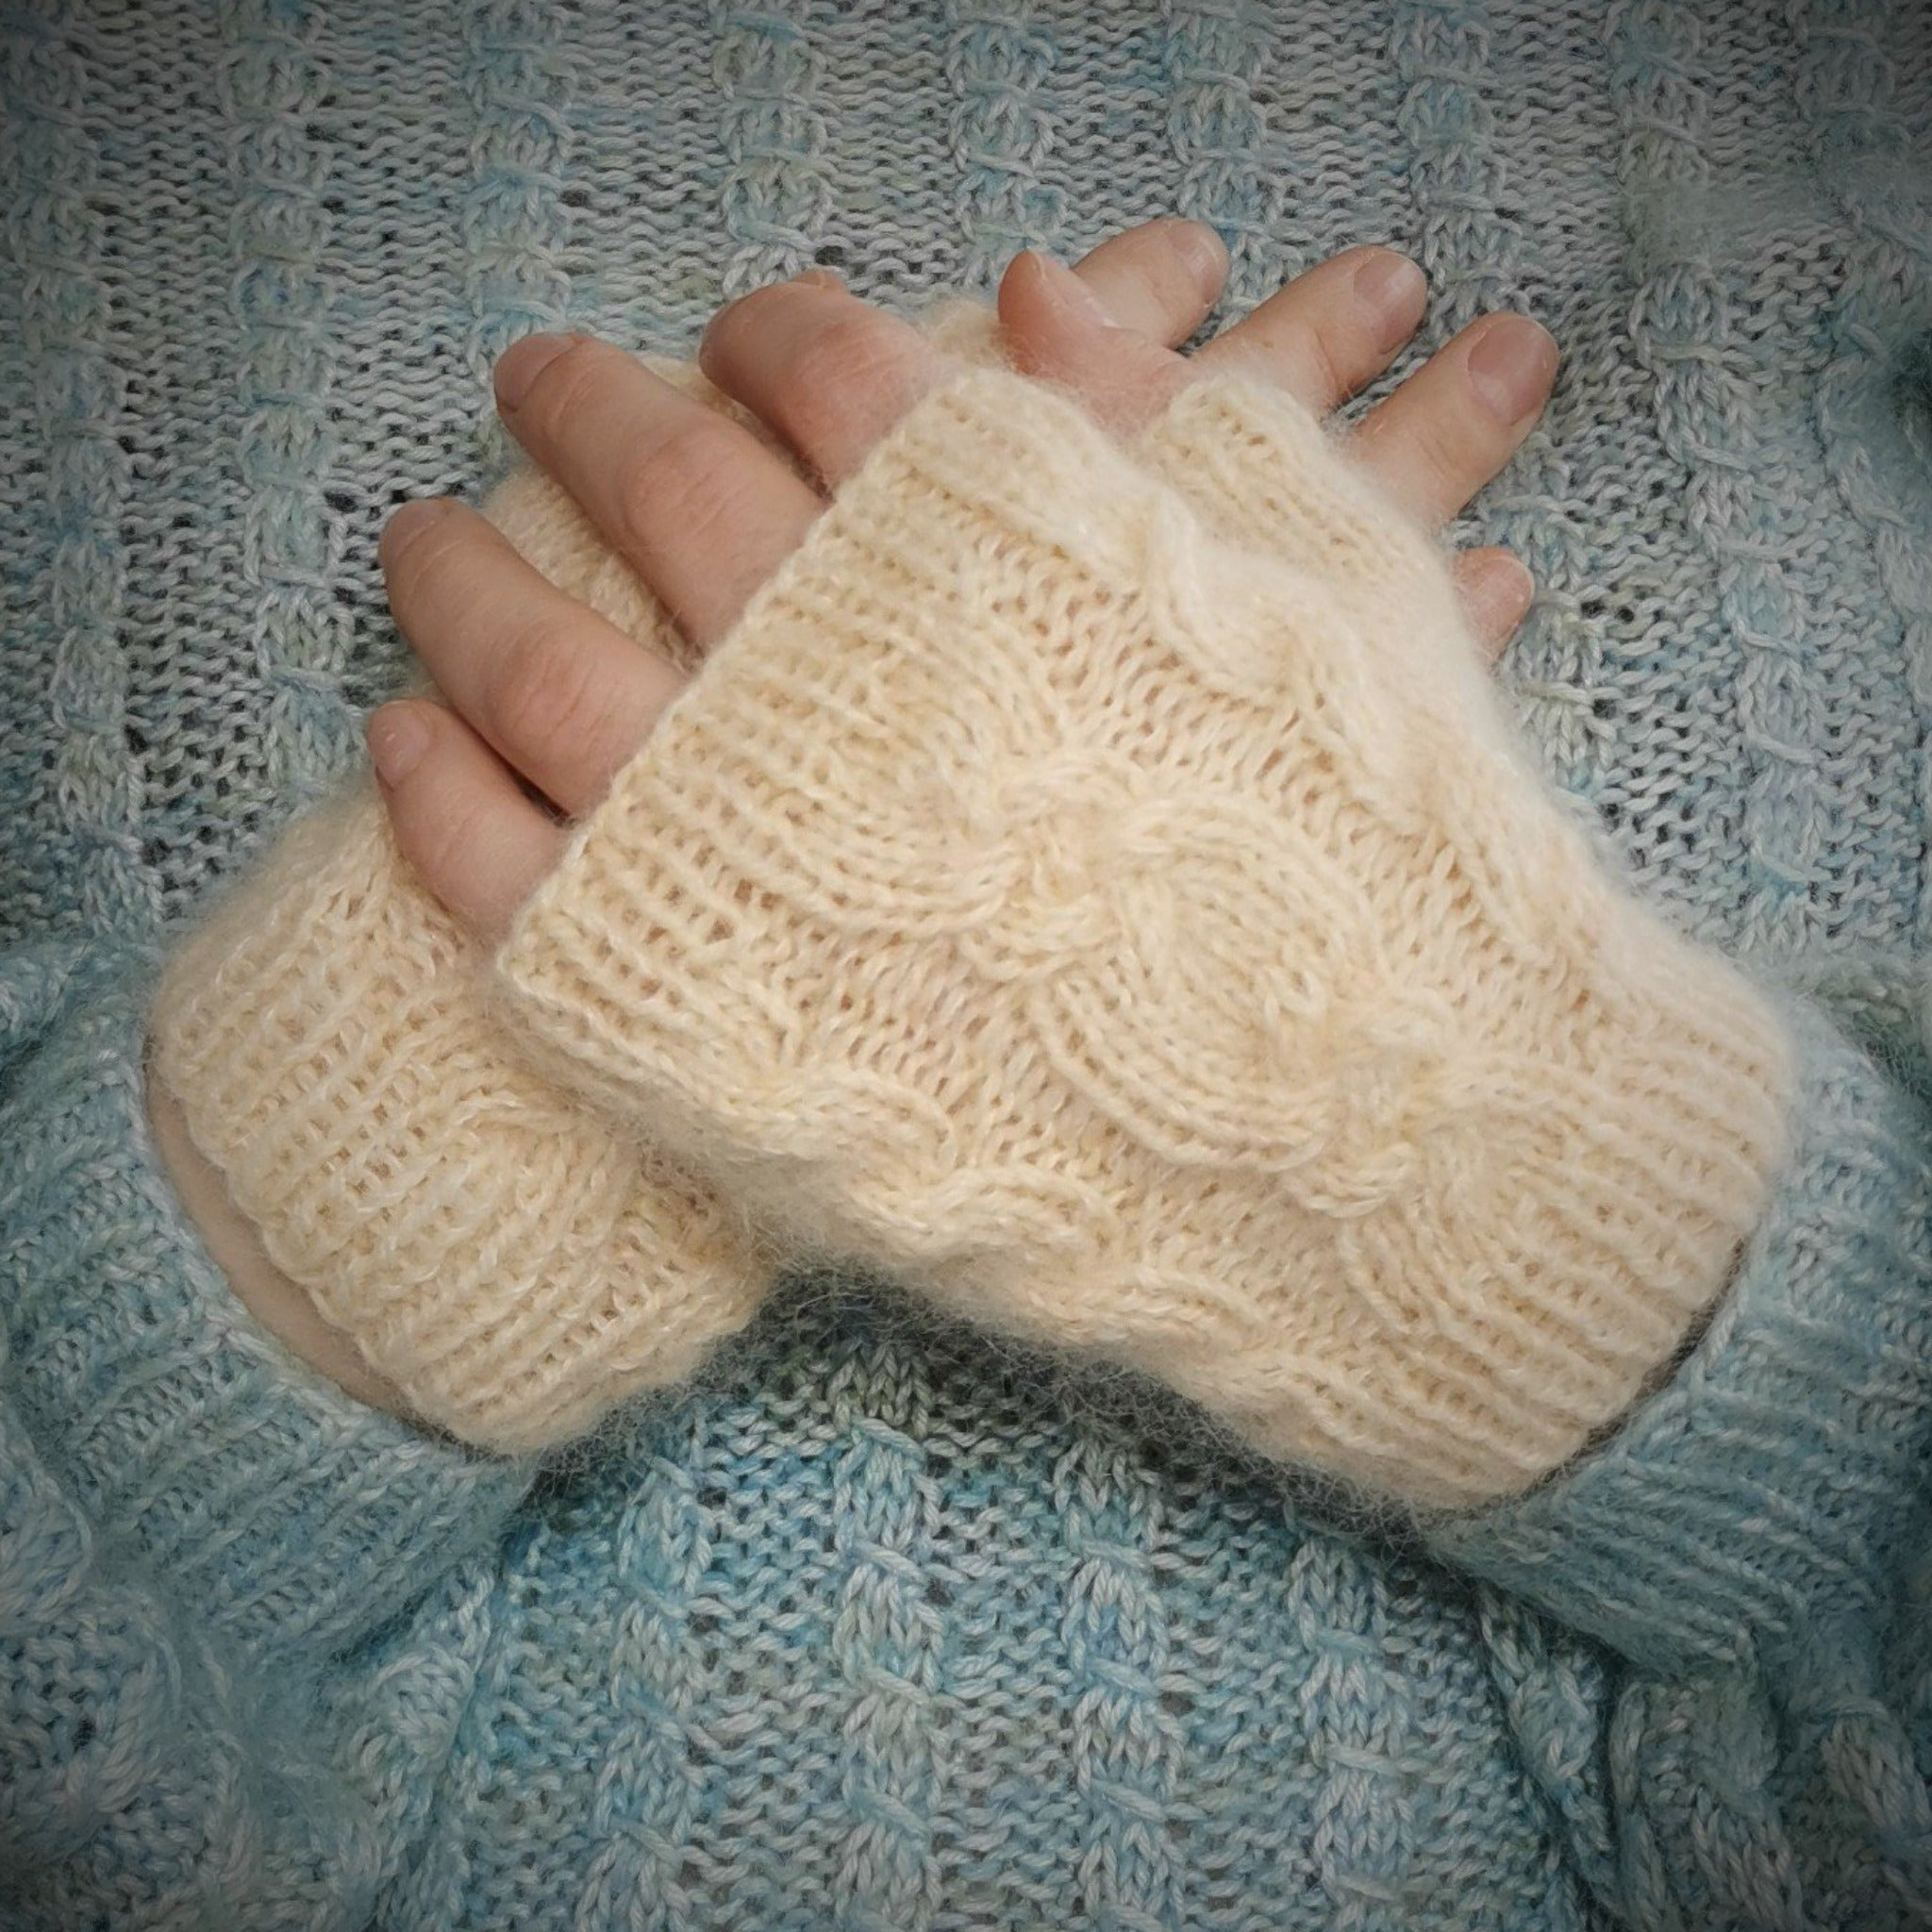 Easter Twist Fingerless Mittens Pattern Only -  Digital Pattern in English/Norwegian - Norwegian mittens design